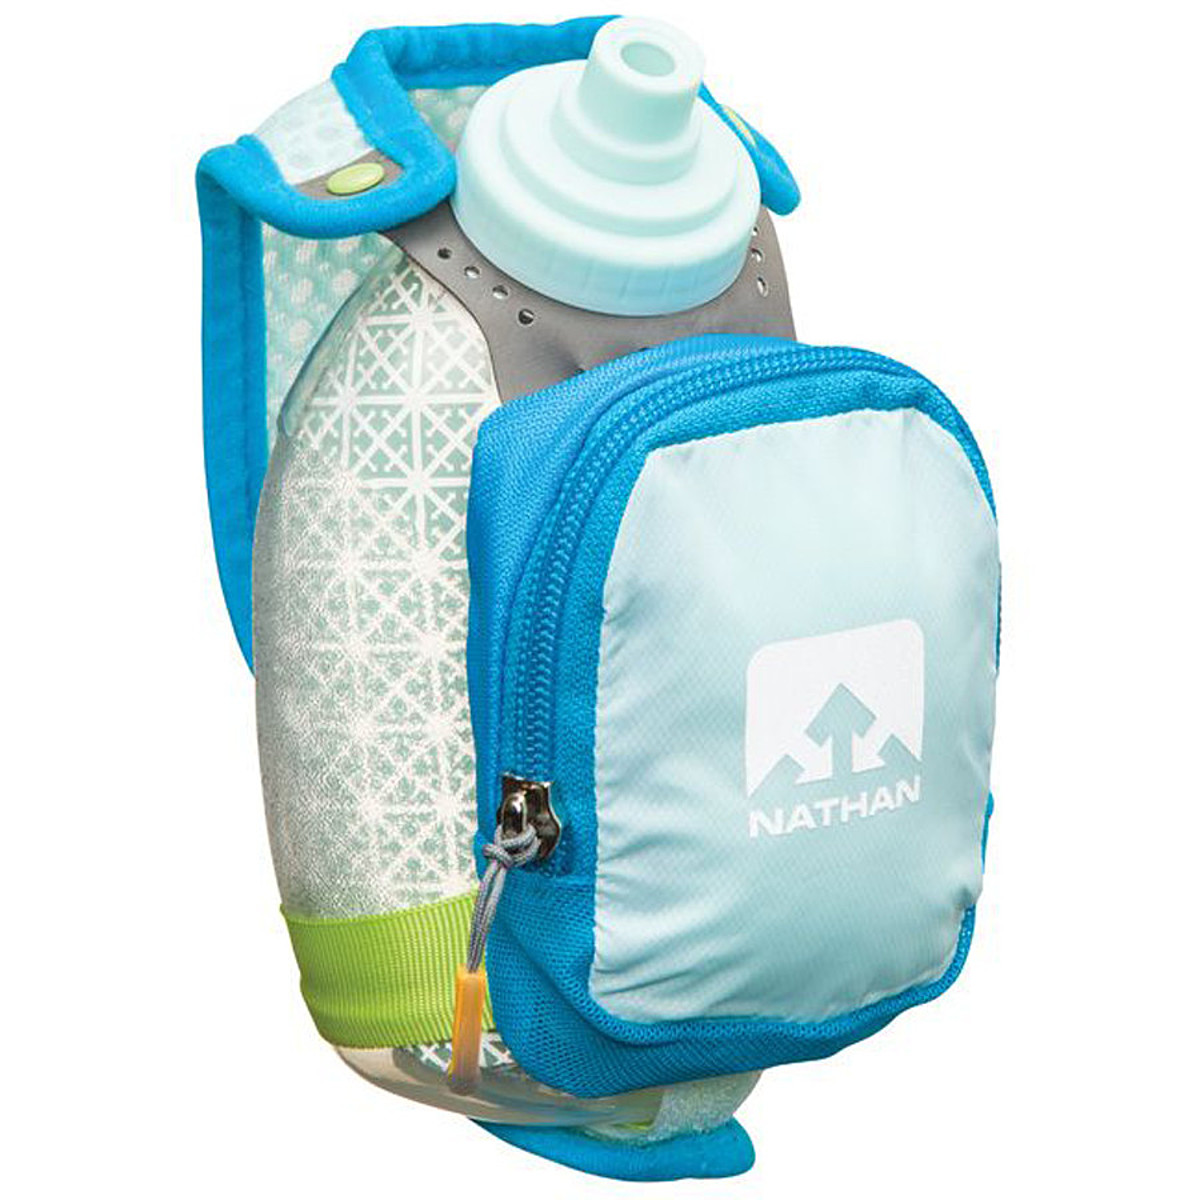 Nathan QuickShot Plus Insulated